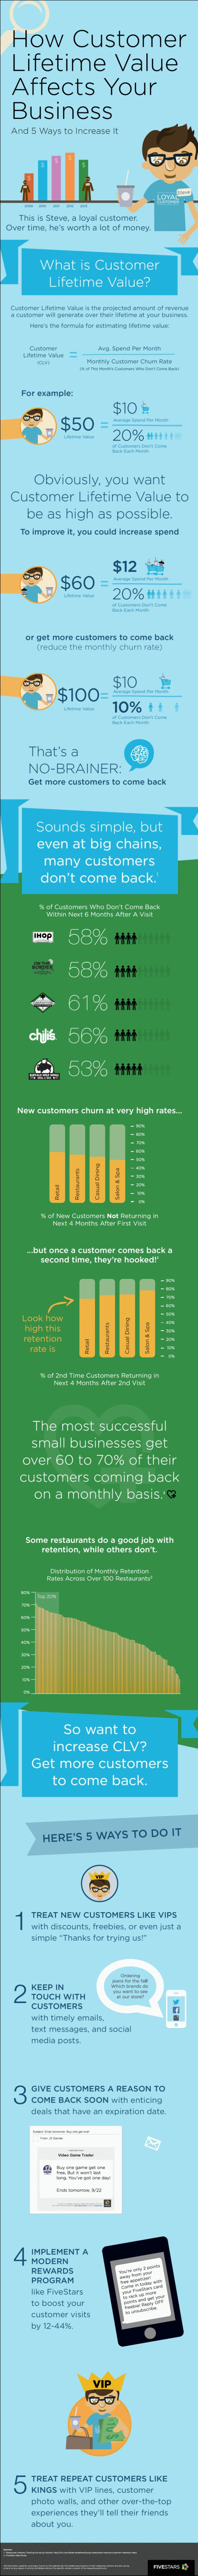 #Infographic: How Customer Lifetime Value affects your business (Research by FiveStars)